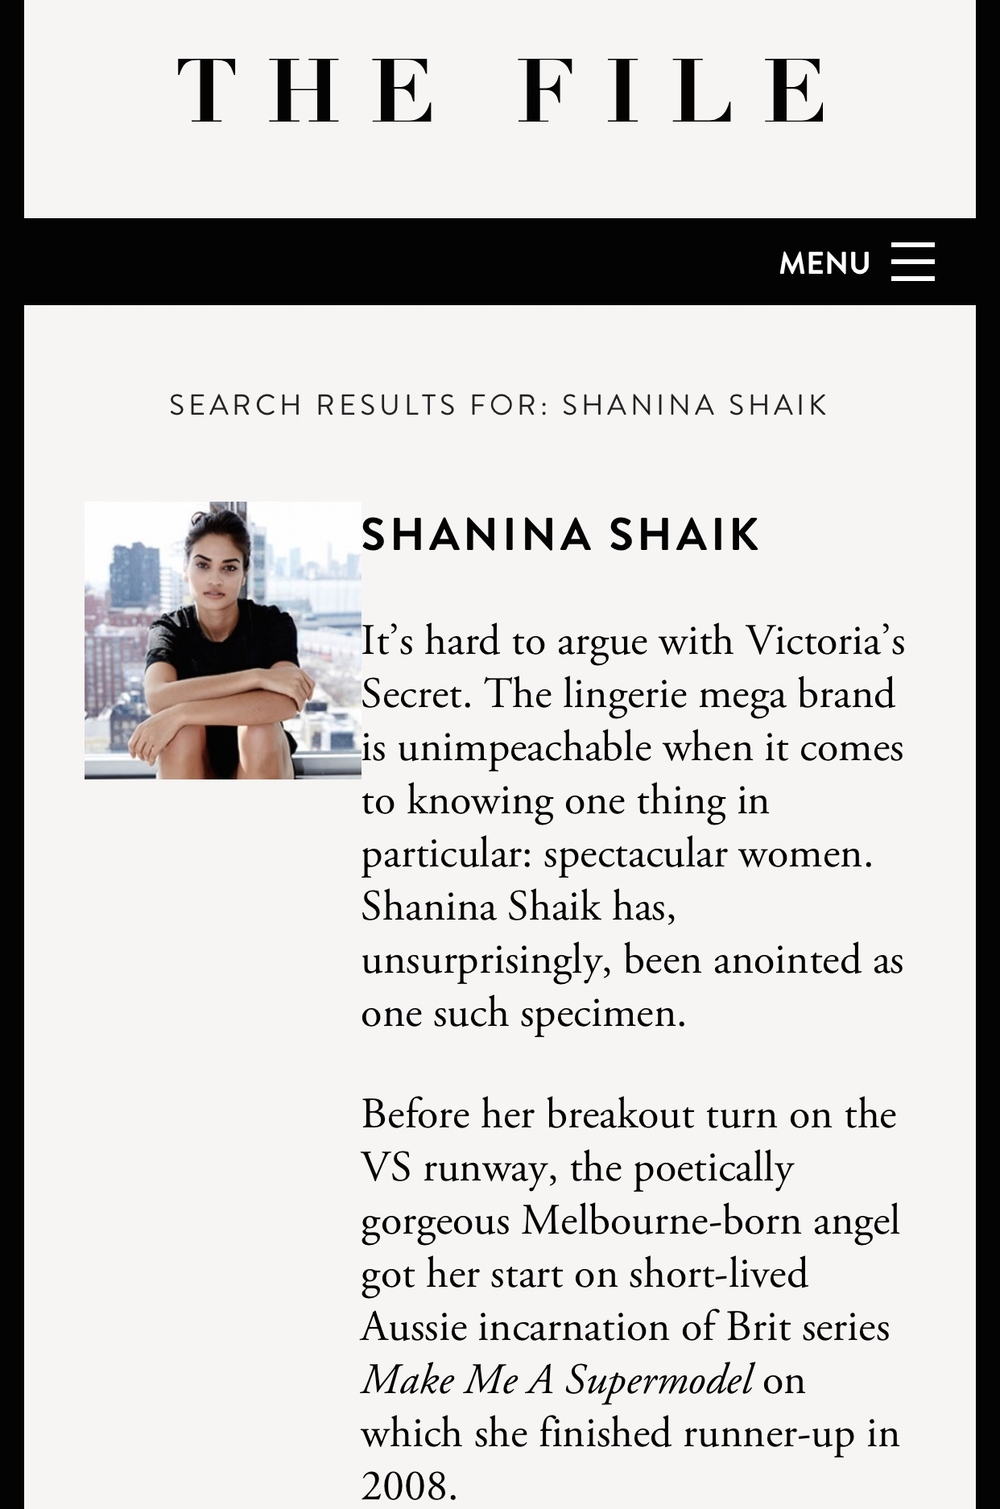 Shanina Shaik - The File